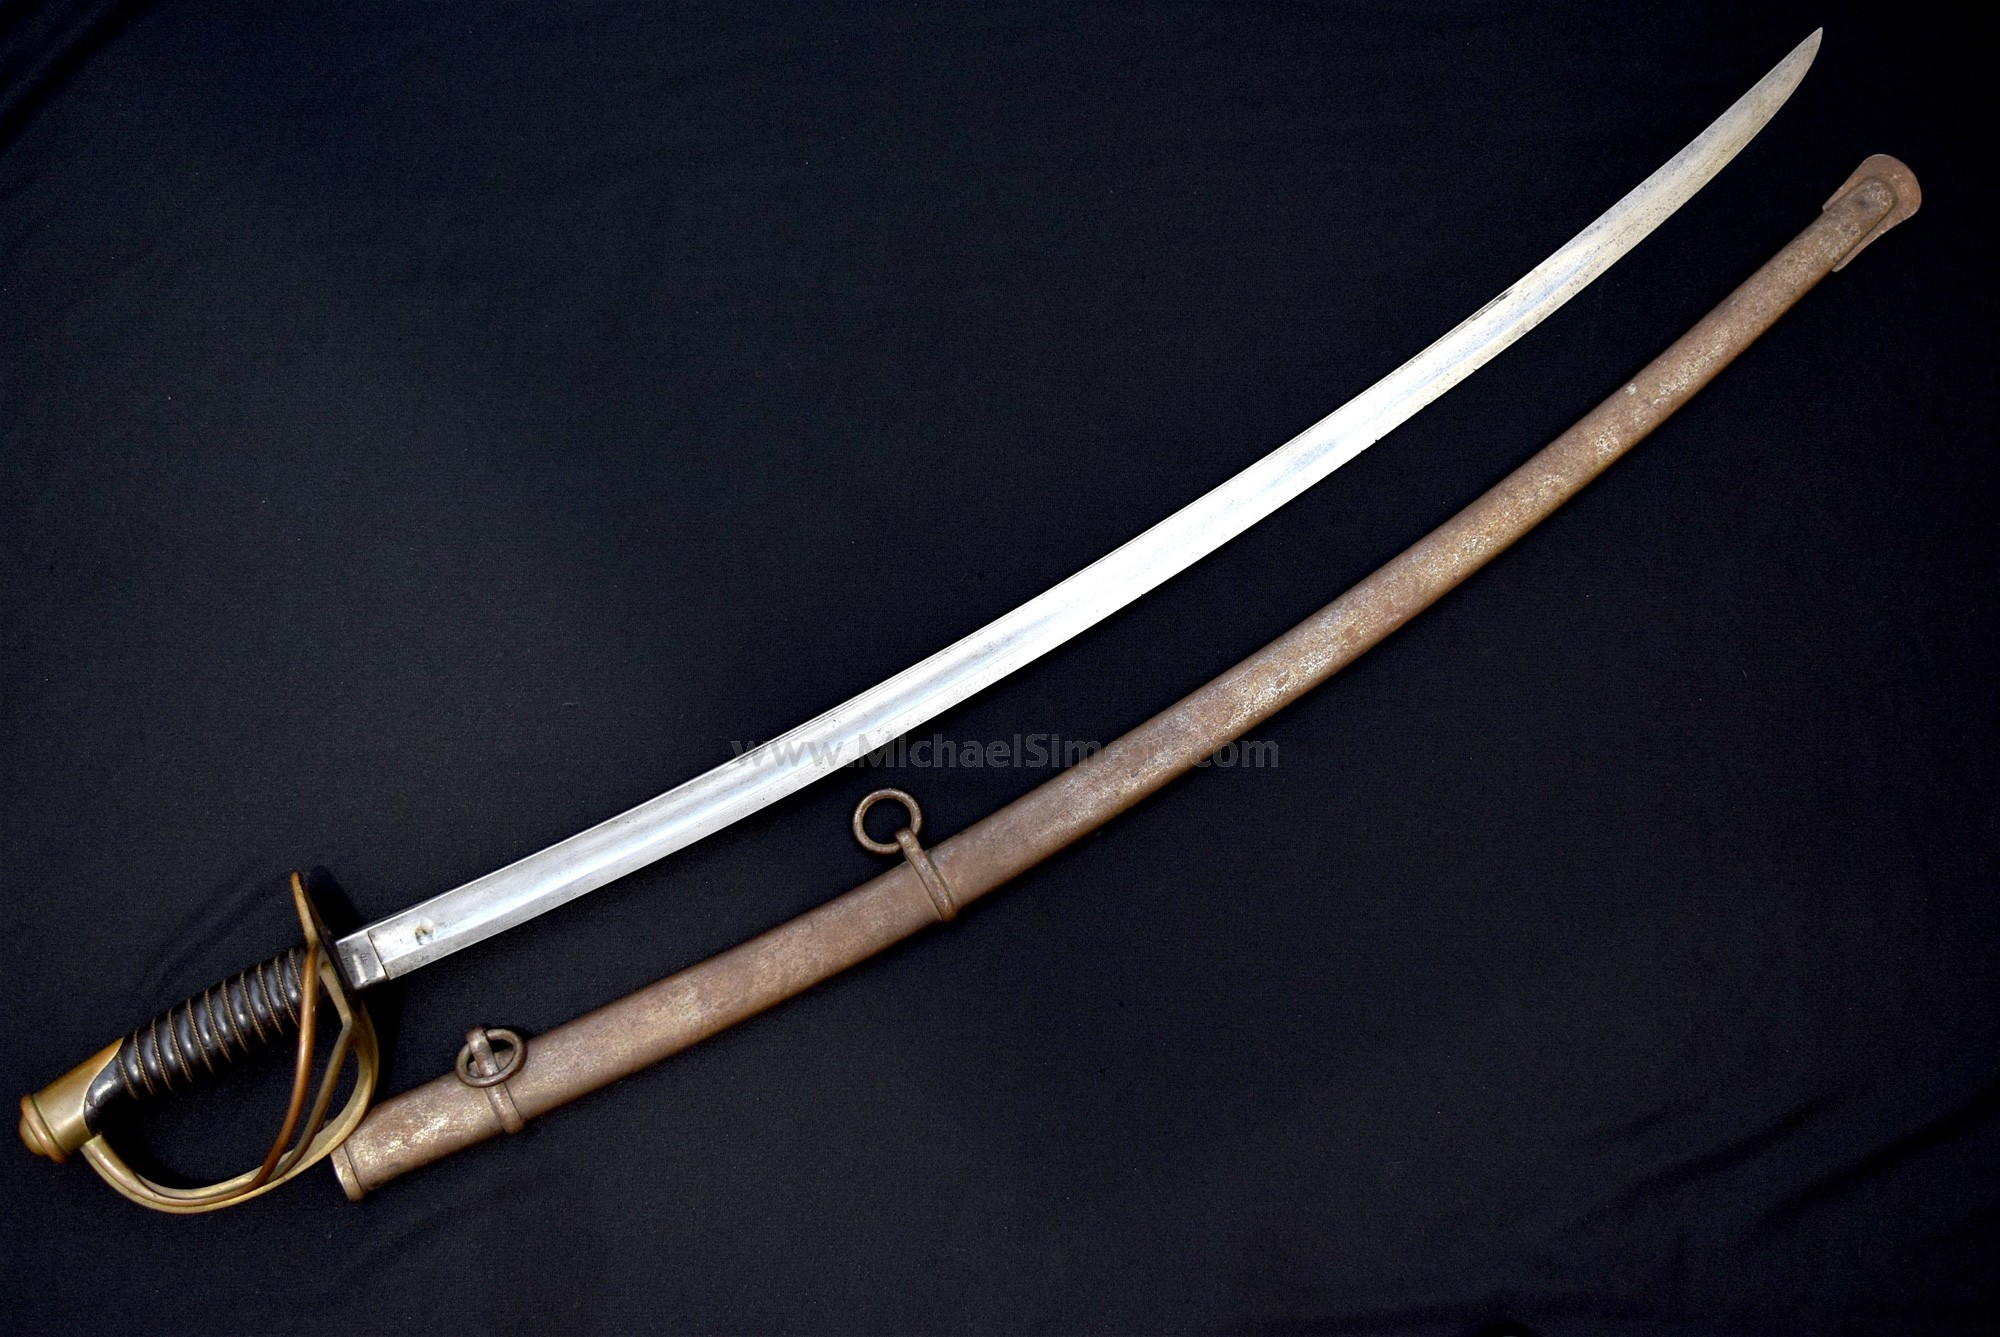 ORIGINAL CIVIL WAR CAVALRY SABER